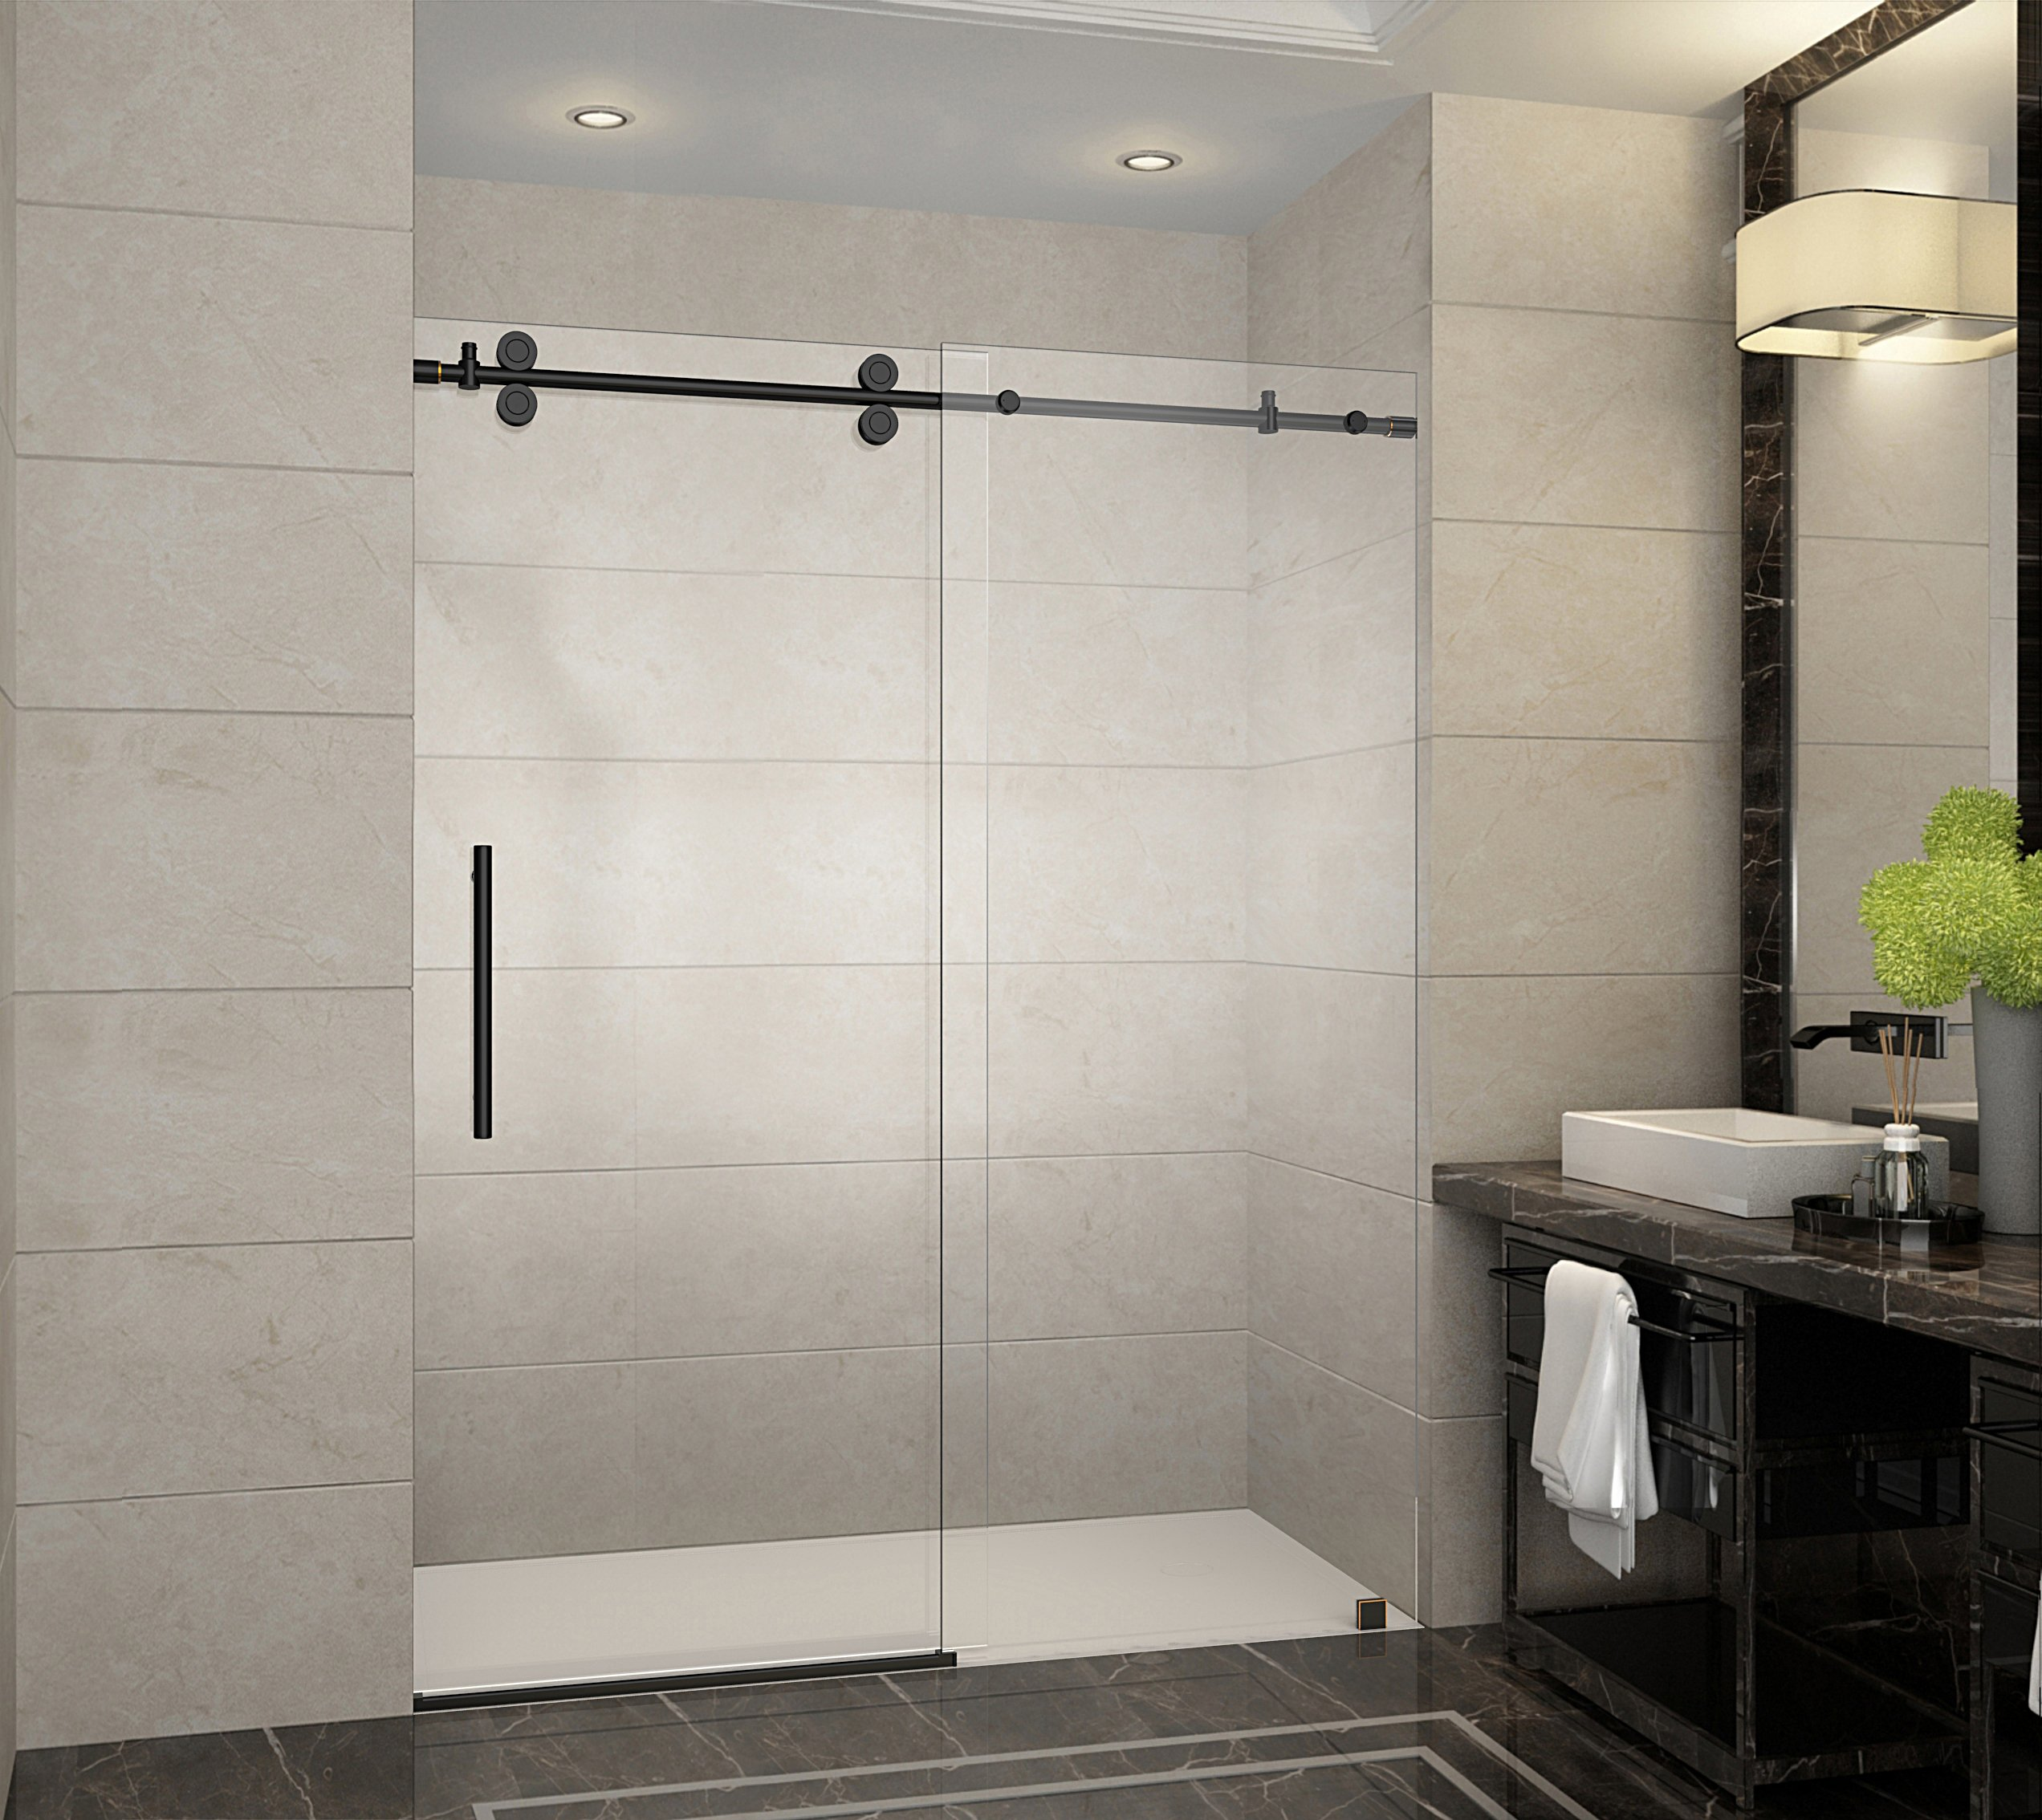 Aston SDR978-ORB-60-10 Langham x 75 in. Frameless Sliding Shower Door in Oil Rubbed Bronze with Handle Completely, 60'', Oil Rubbed Bronze Finish